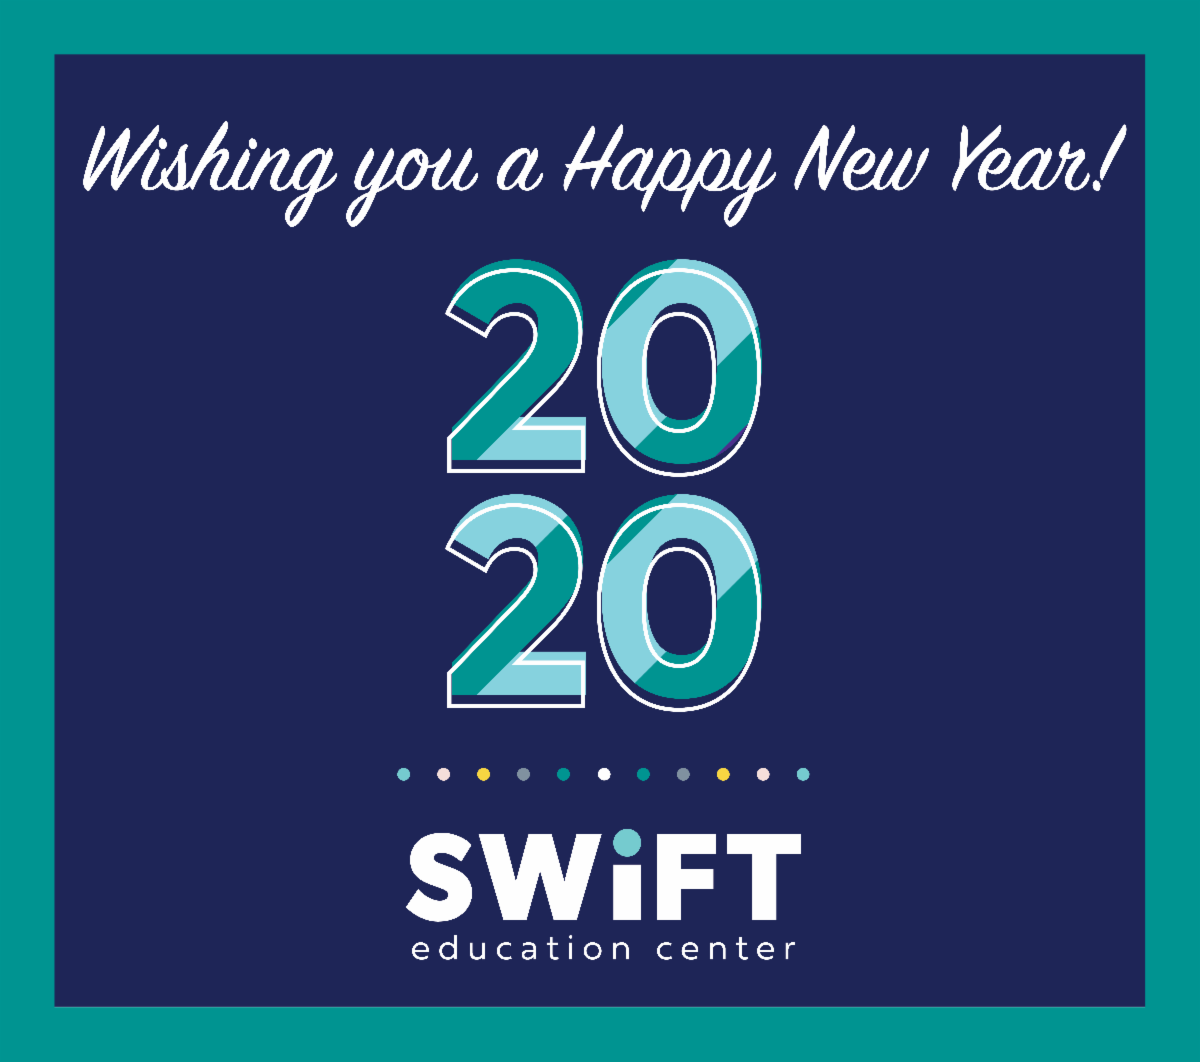 Wishing you a Happy New Year! 2020 SWIFT Education Center